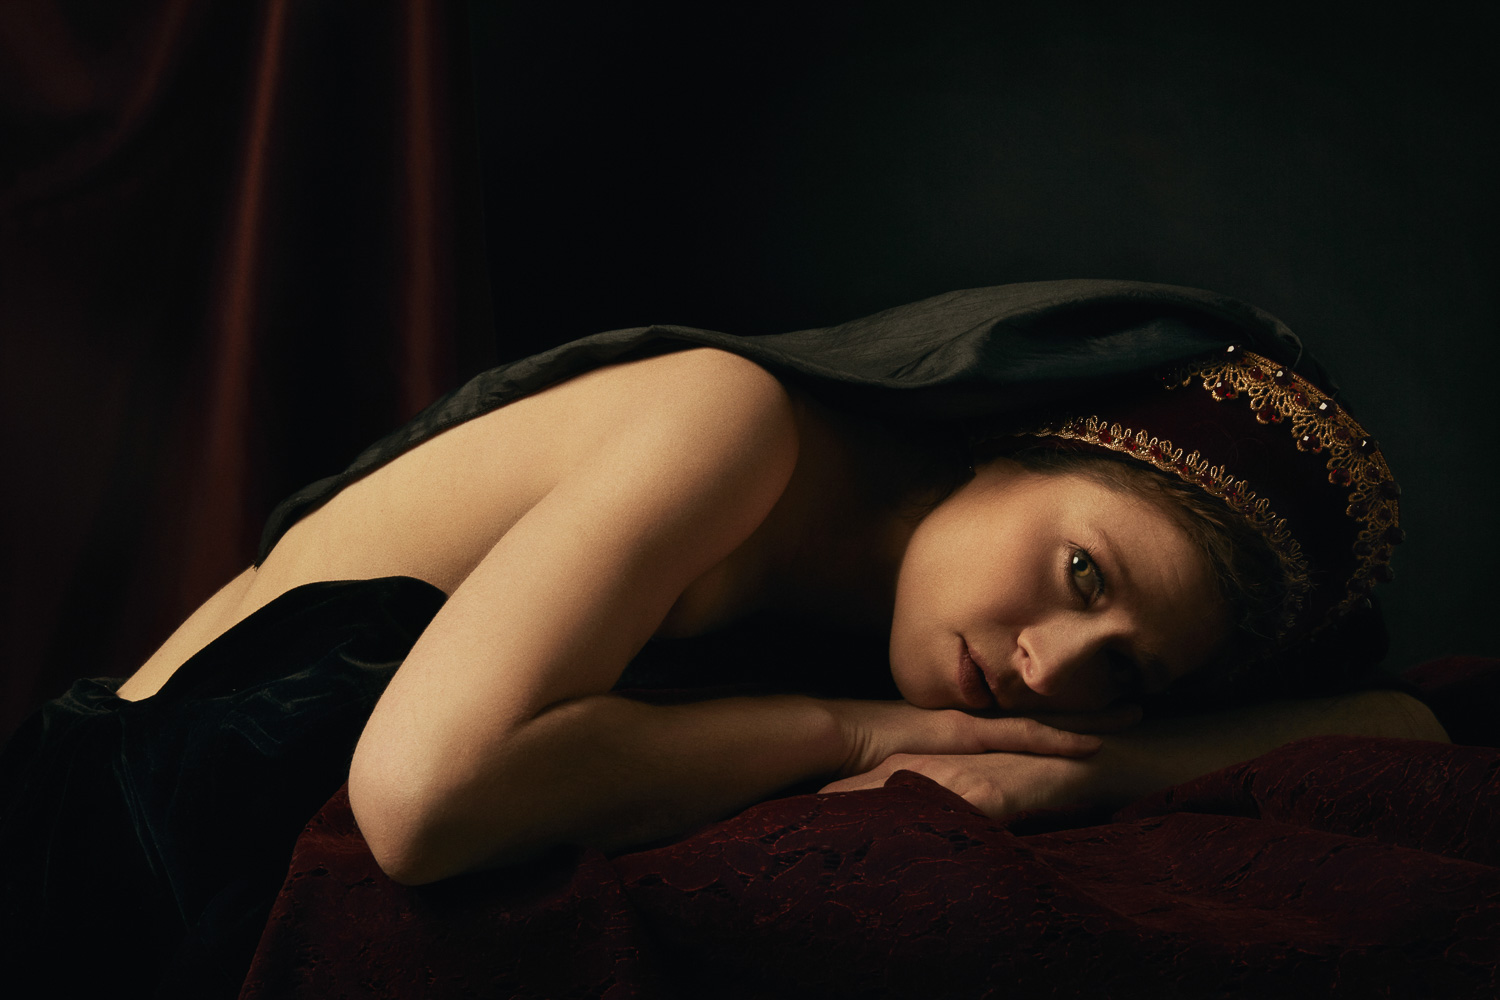 Renaissance style boudoir photography with a French hood.